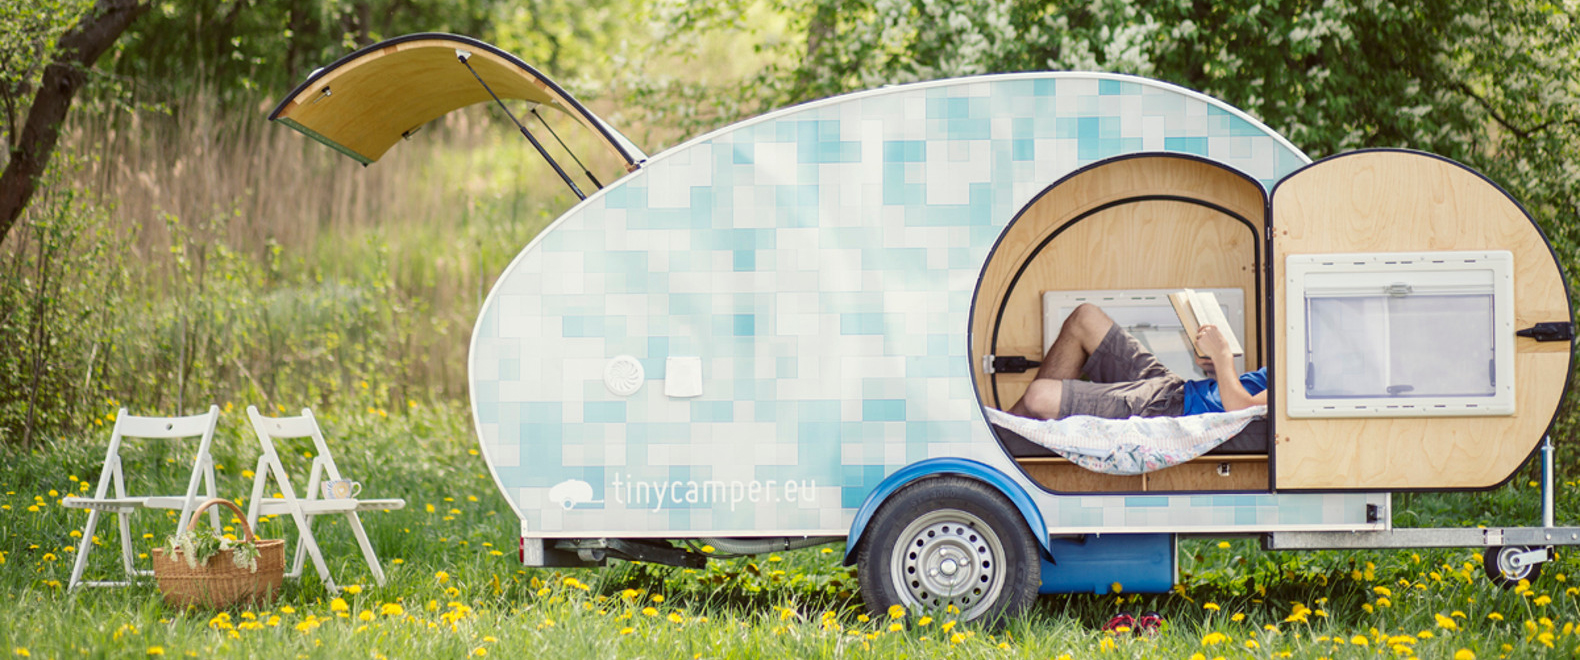 Darling Tinycamper From Lithuania Starts At Just 7K